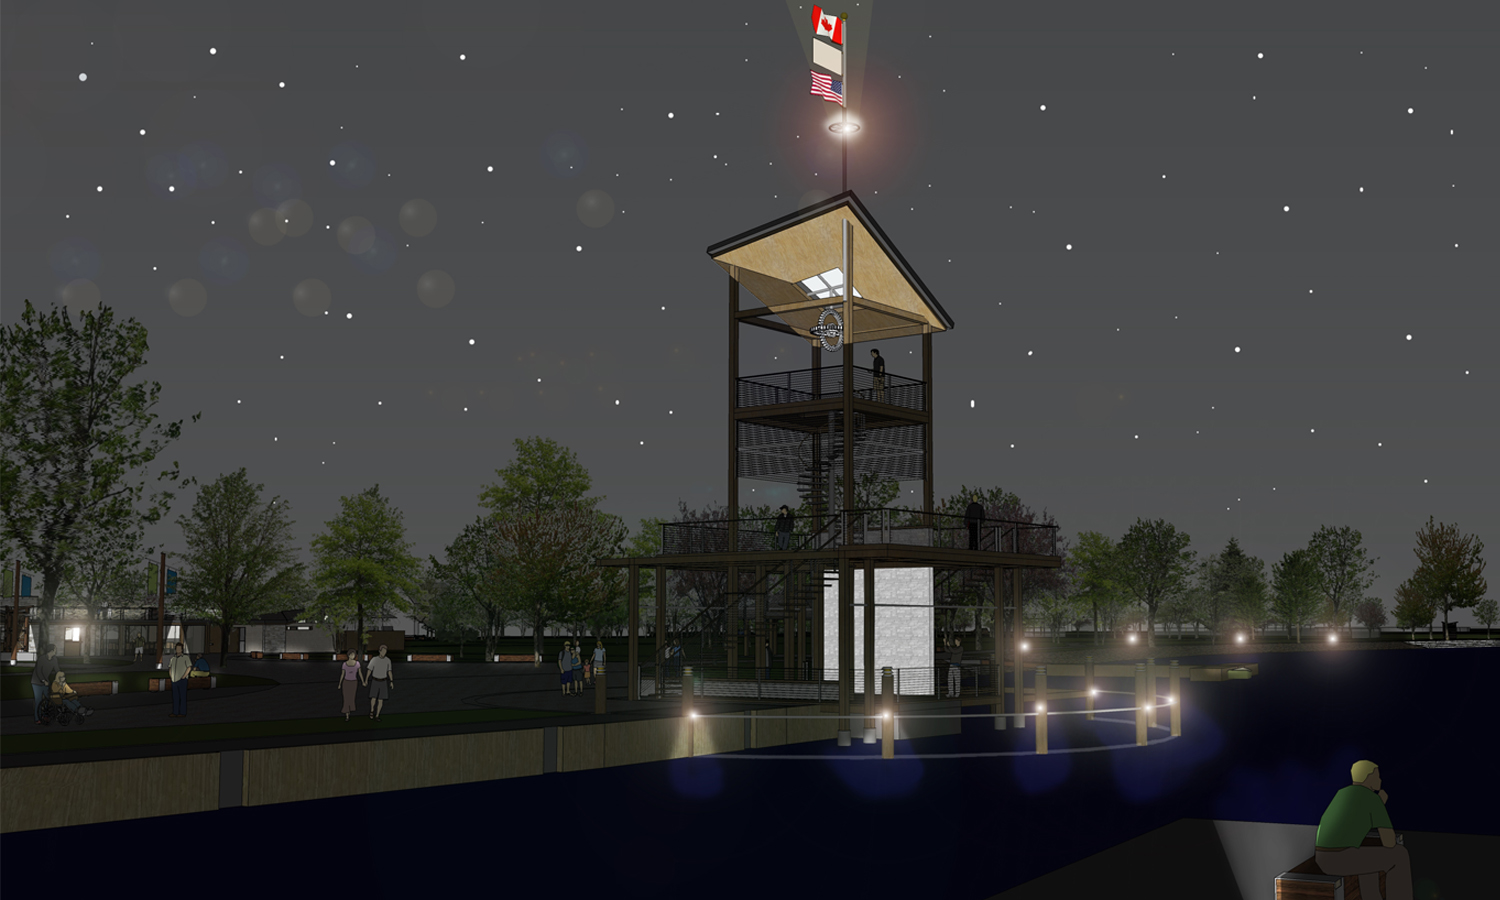 Night View: Look-out Tower from Dock